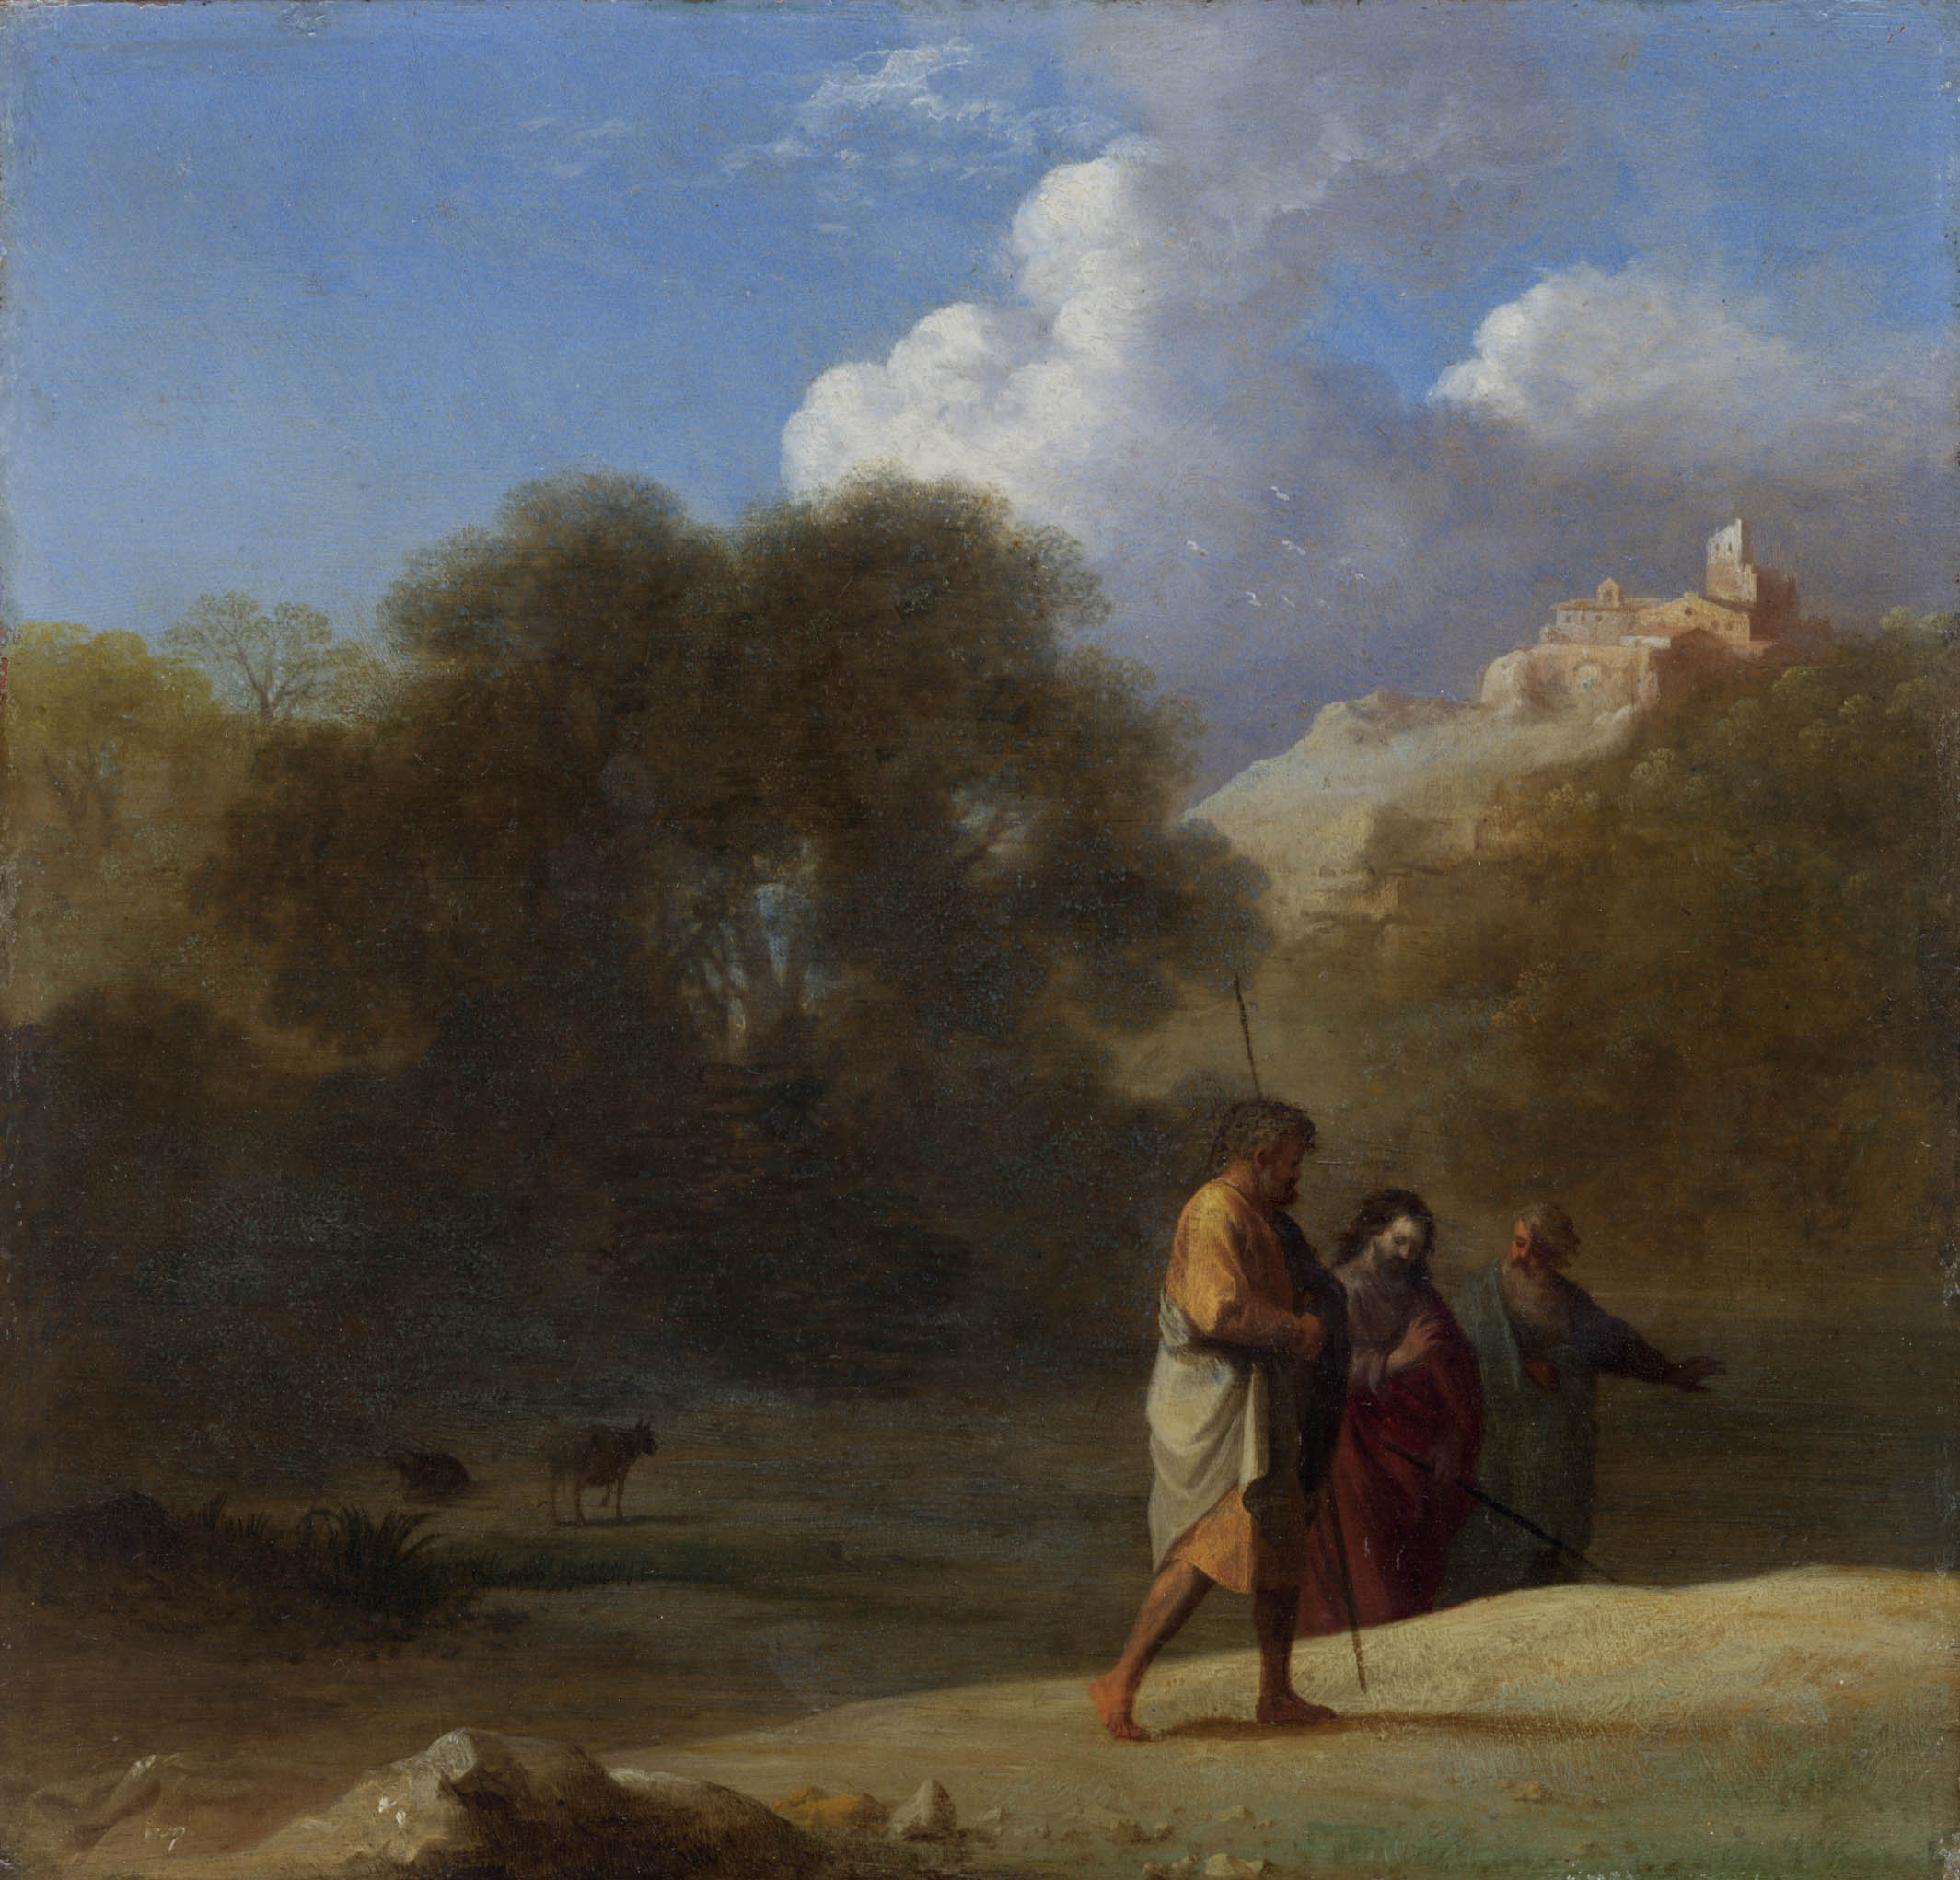 Cornelis van Poelenburgh – Christ on the Road to Emmaus